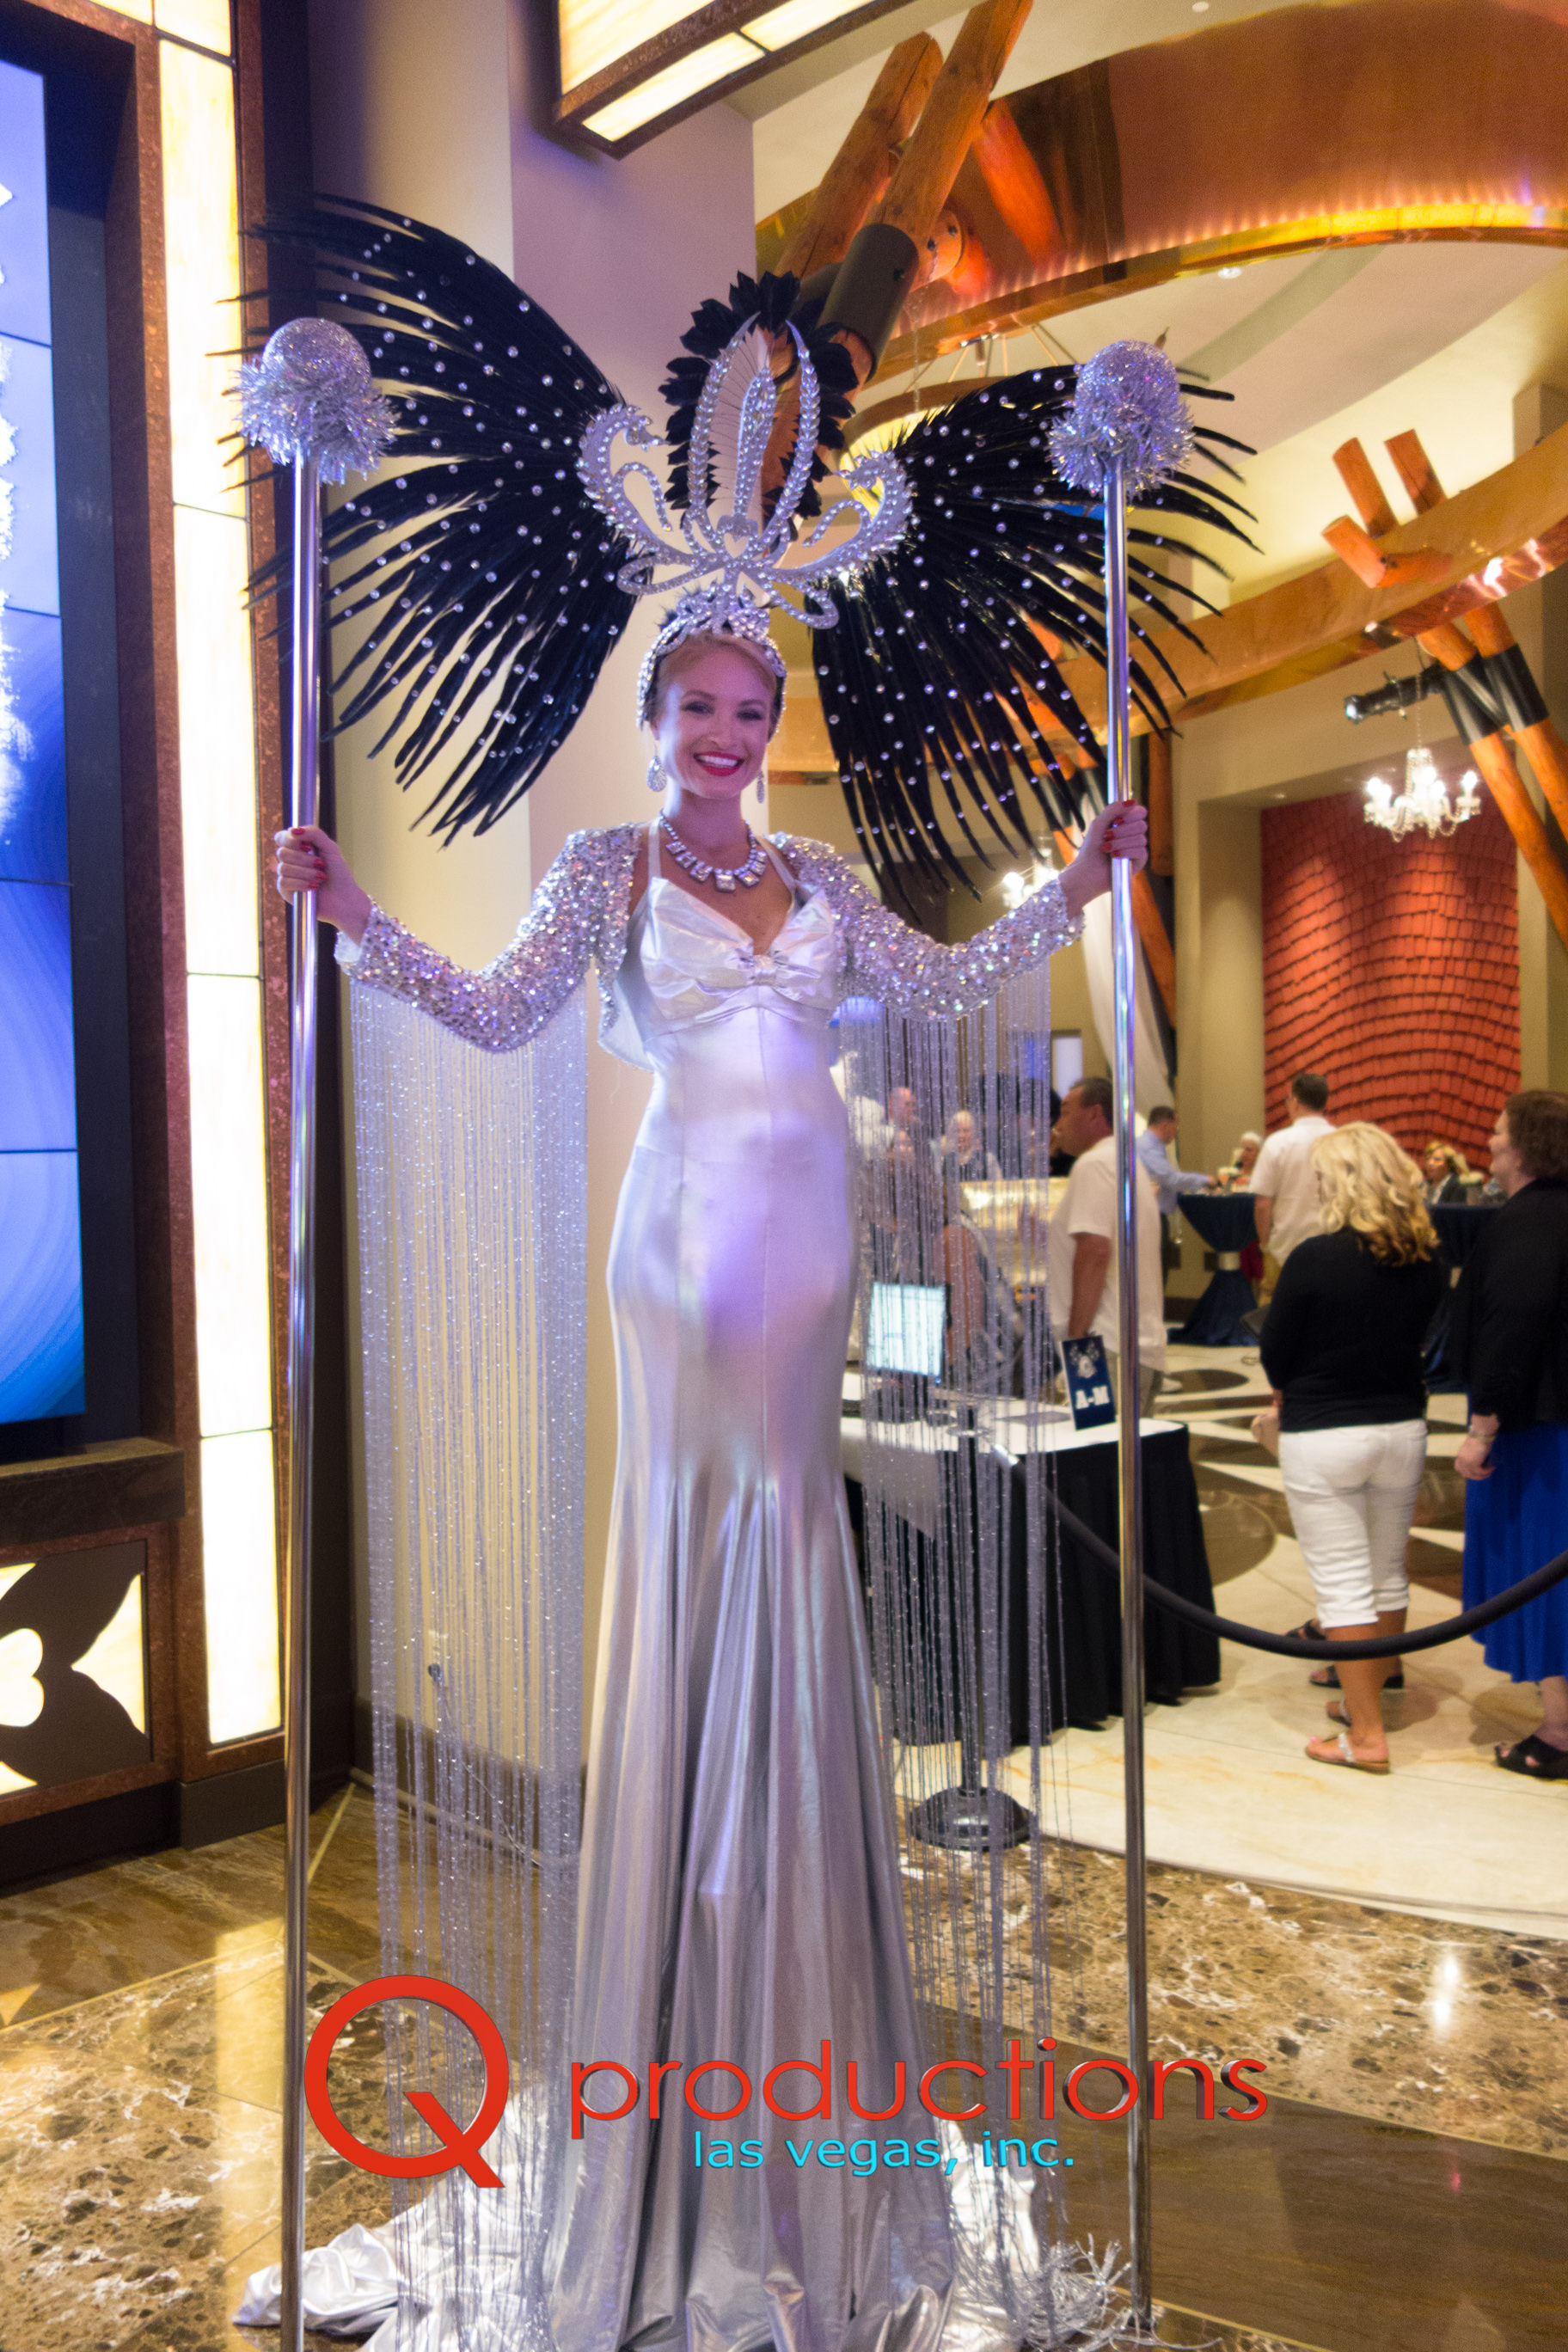 Silver Towering Showgirl Glamazon